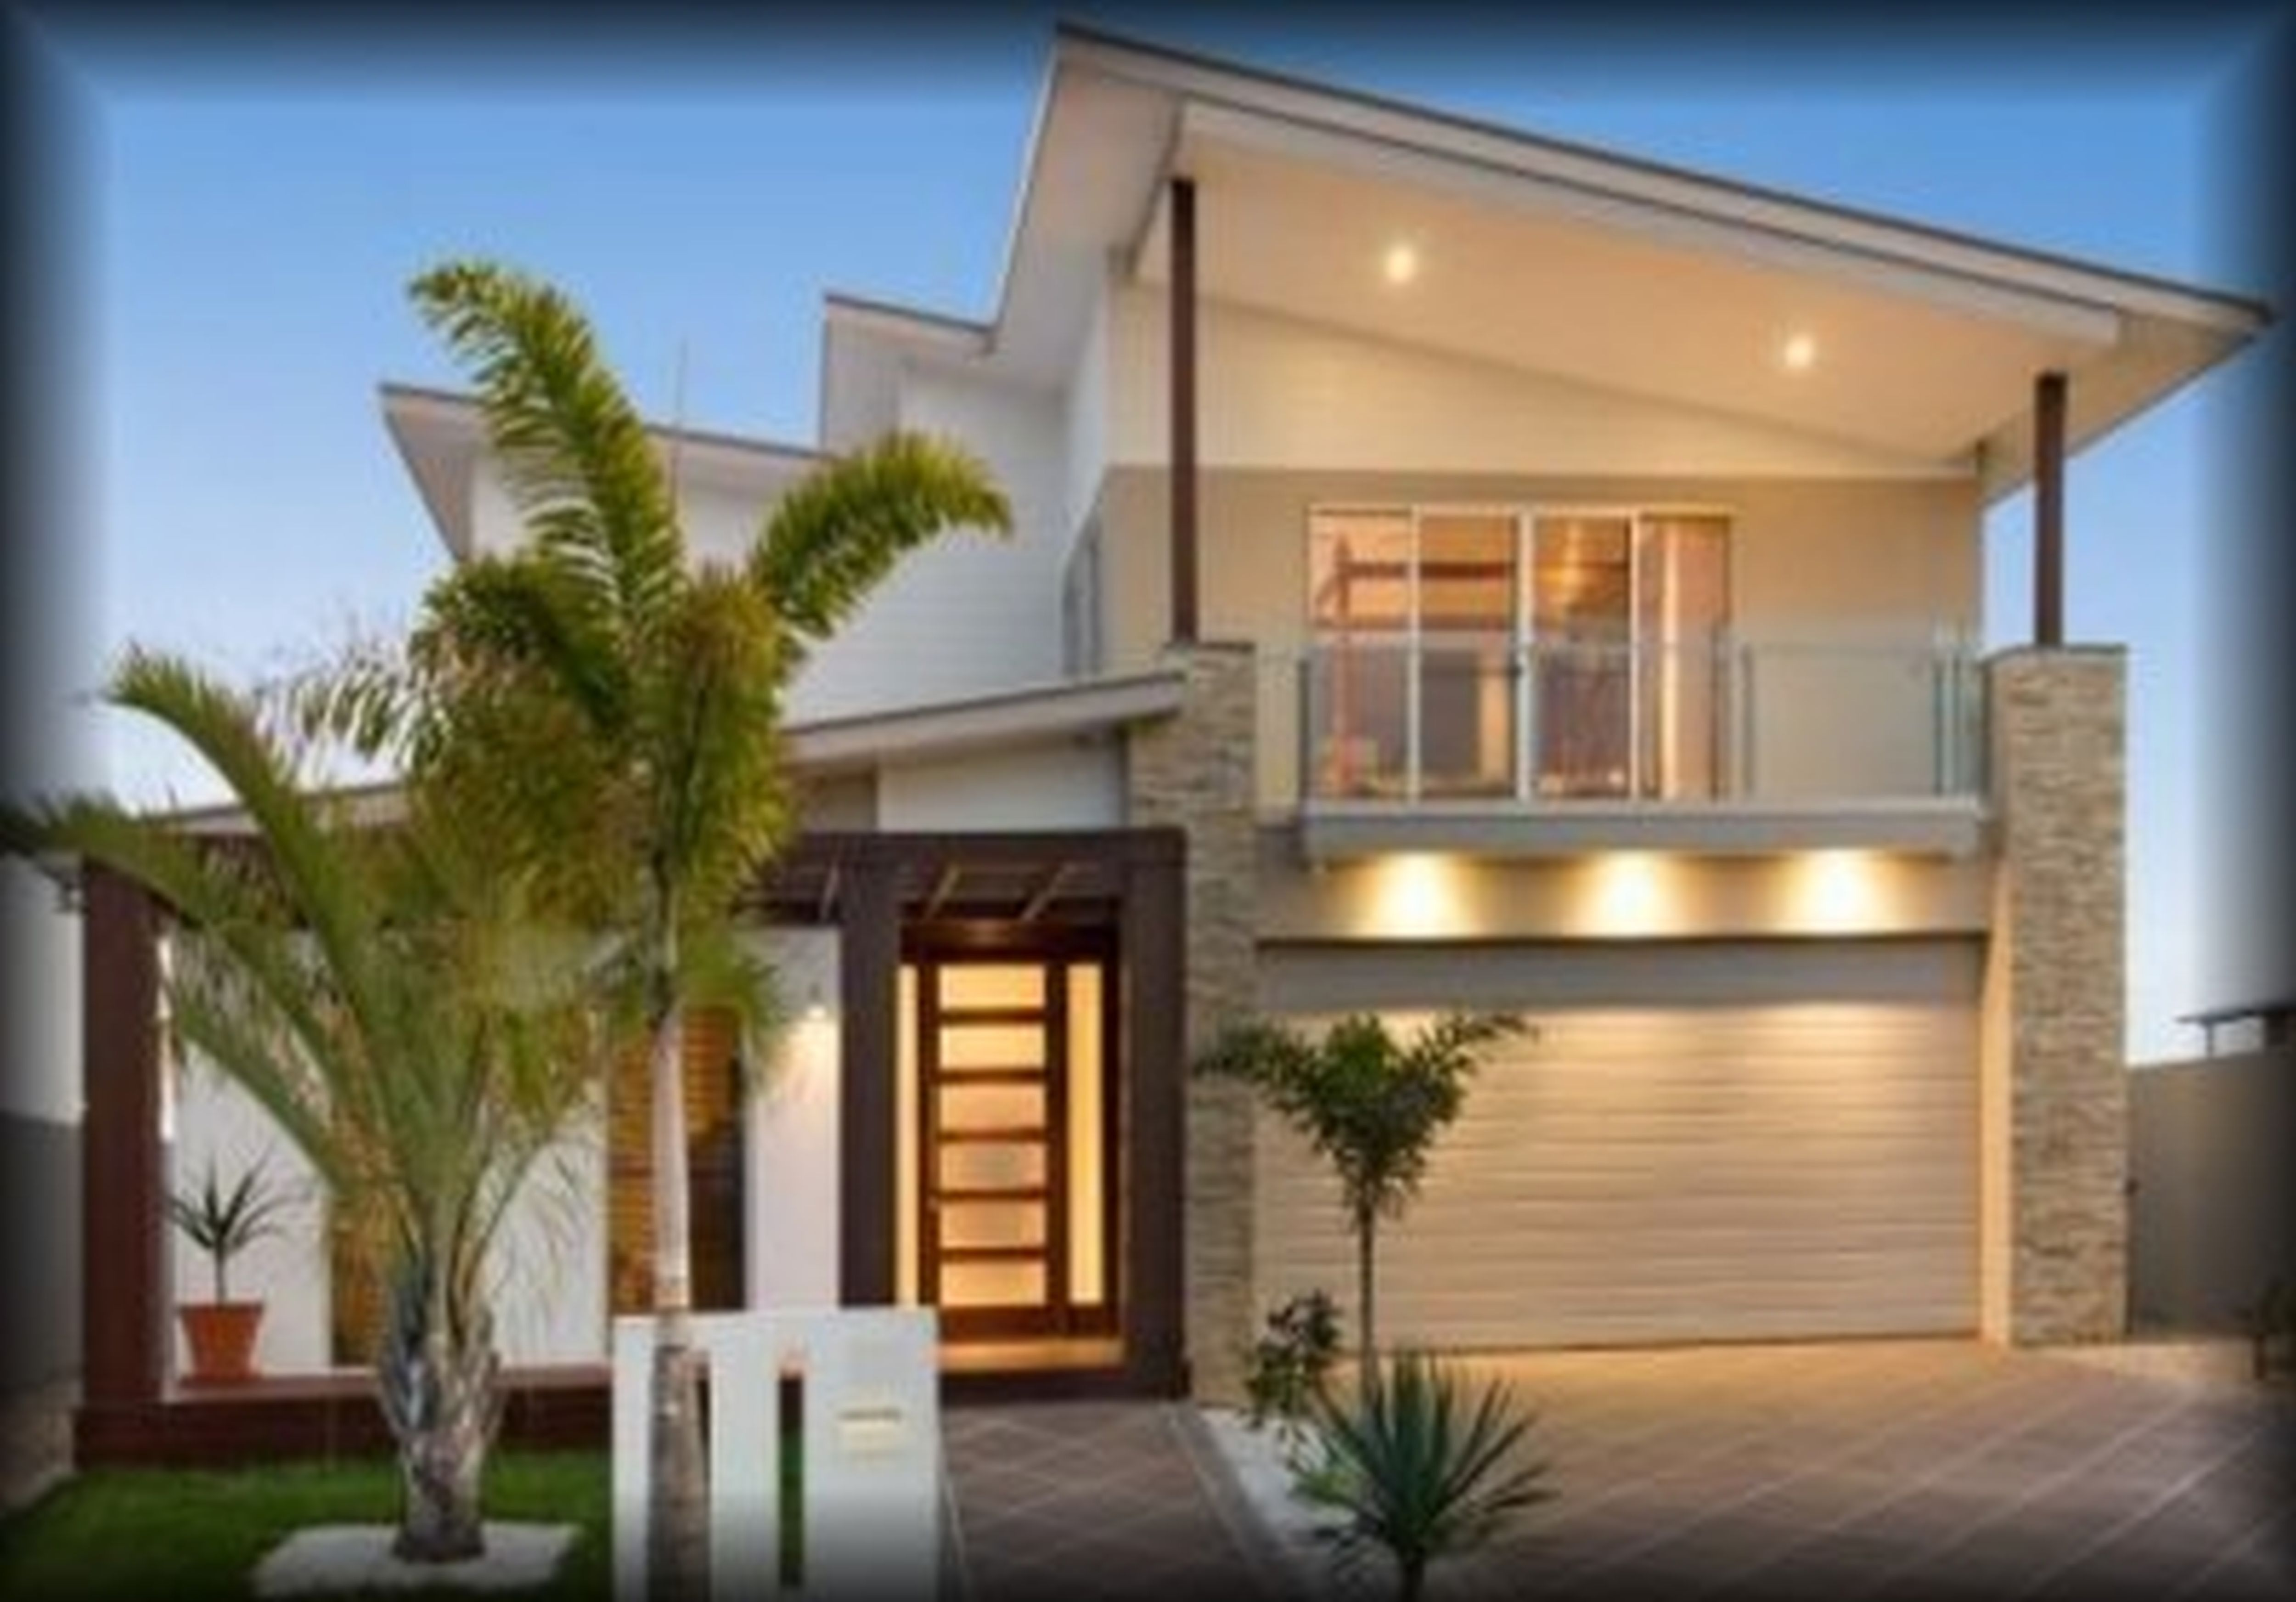 Small house design storey house designs and floor plans for Best home designs australia